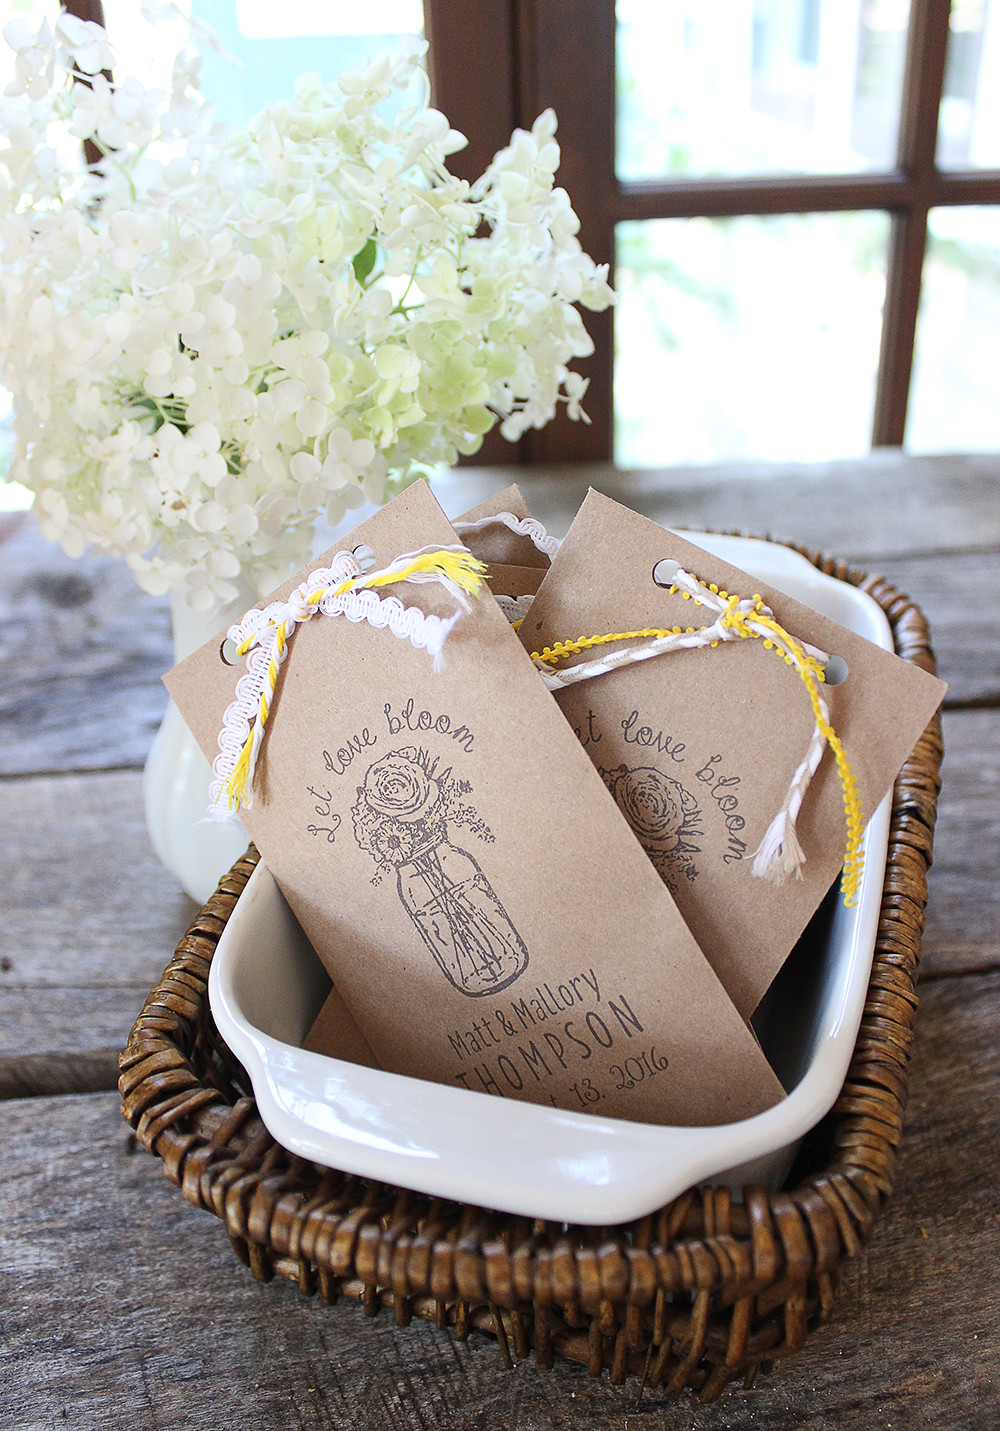 Best ideas about Wedding Favors DIY . Save or Pin 4 DIY Wedding Favors to Make with Rubber Stamps Now.